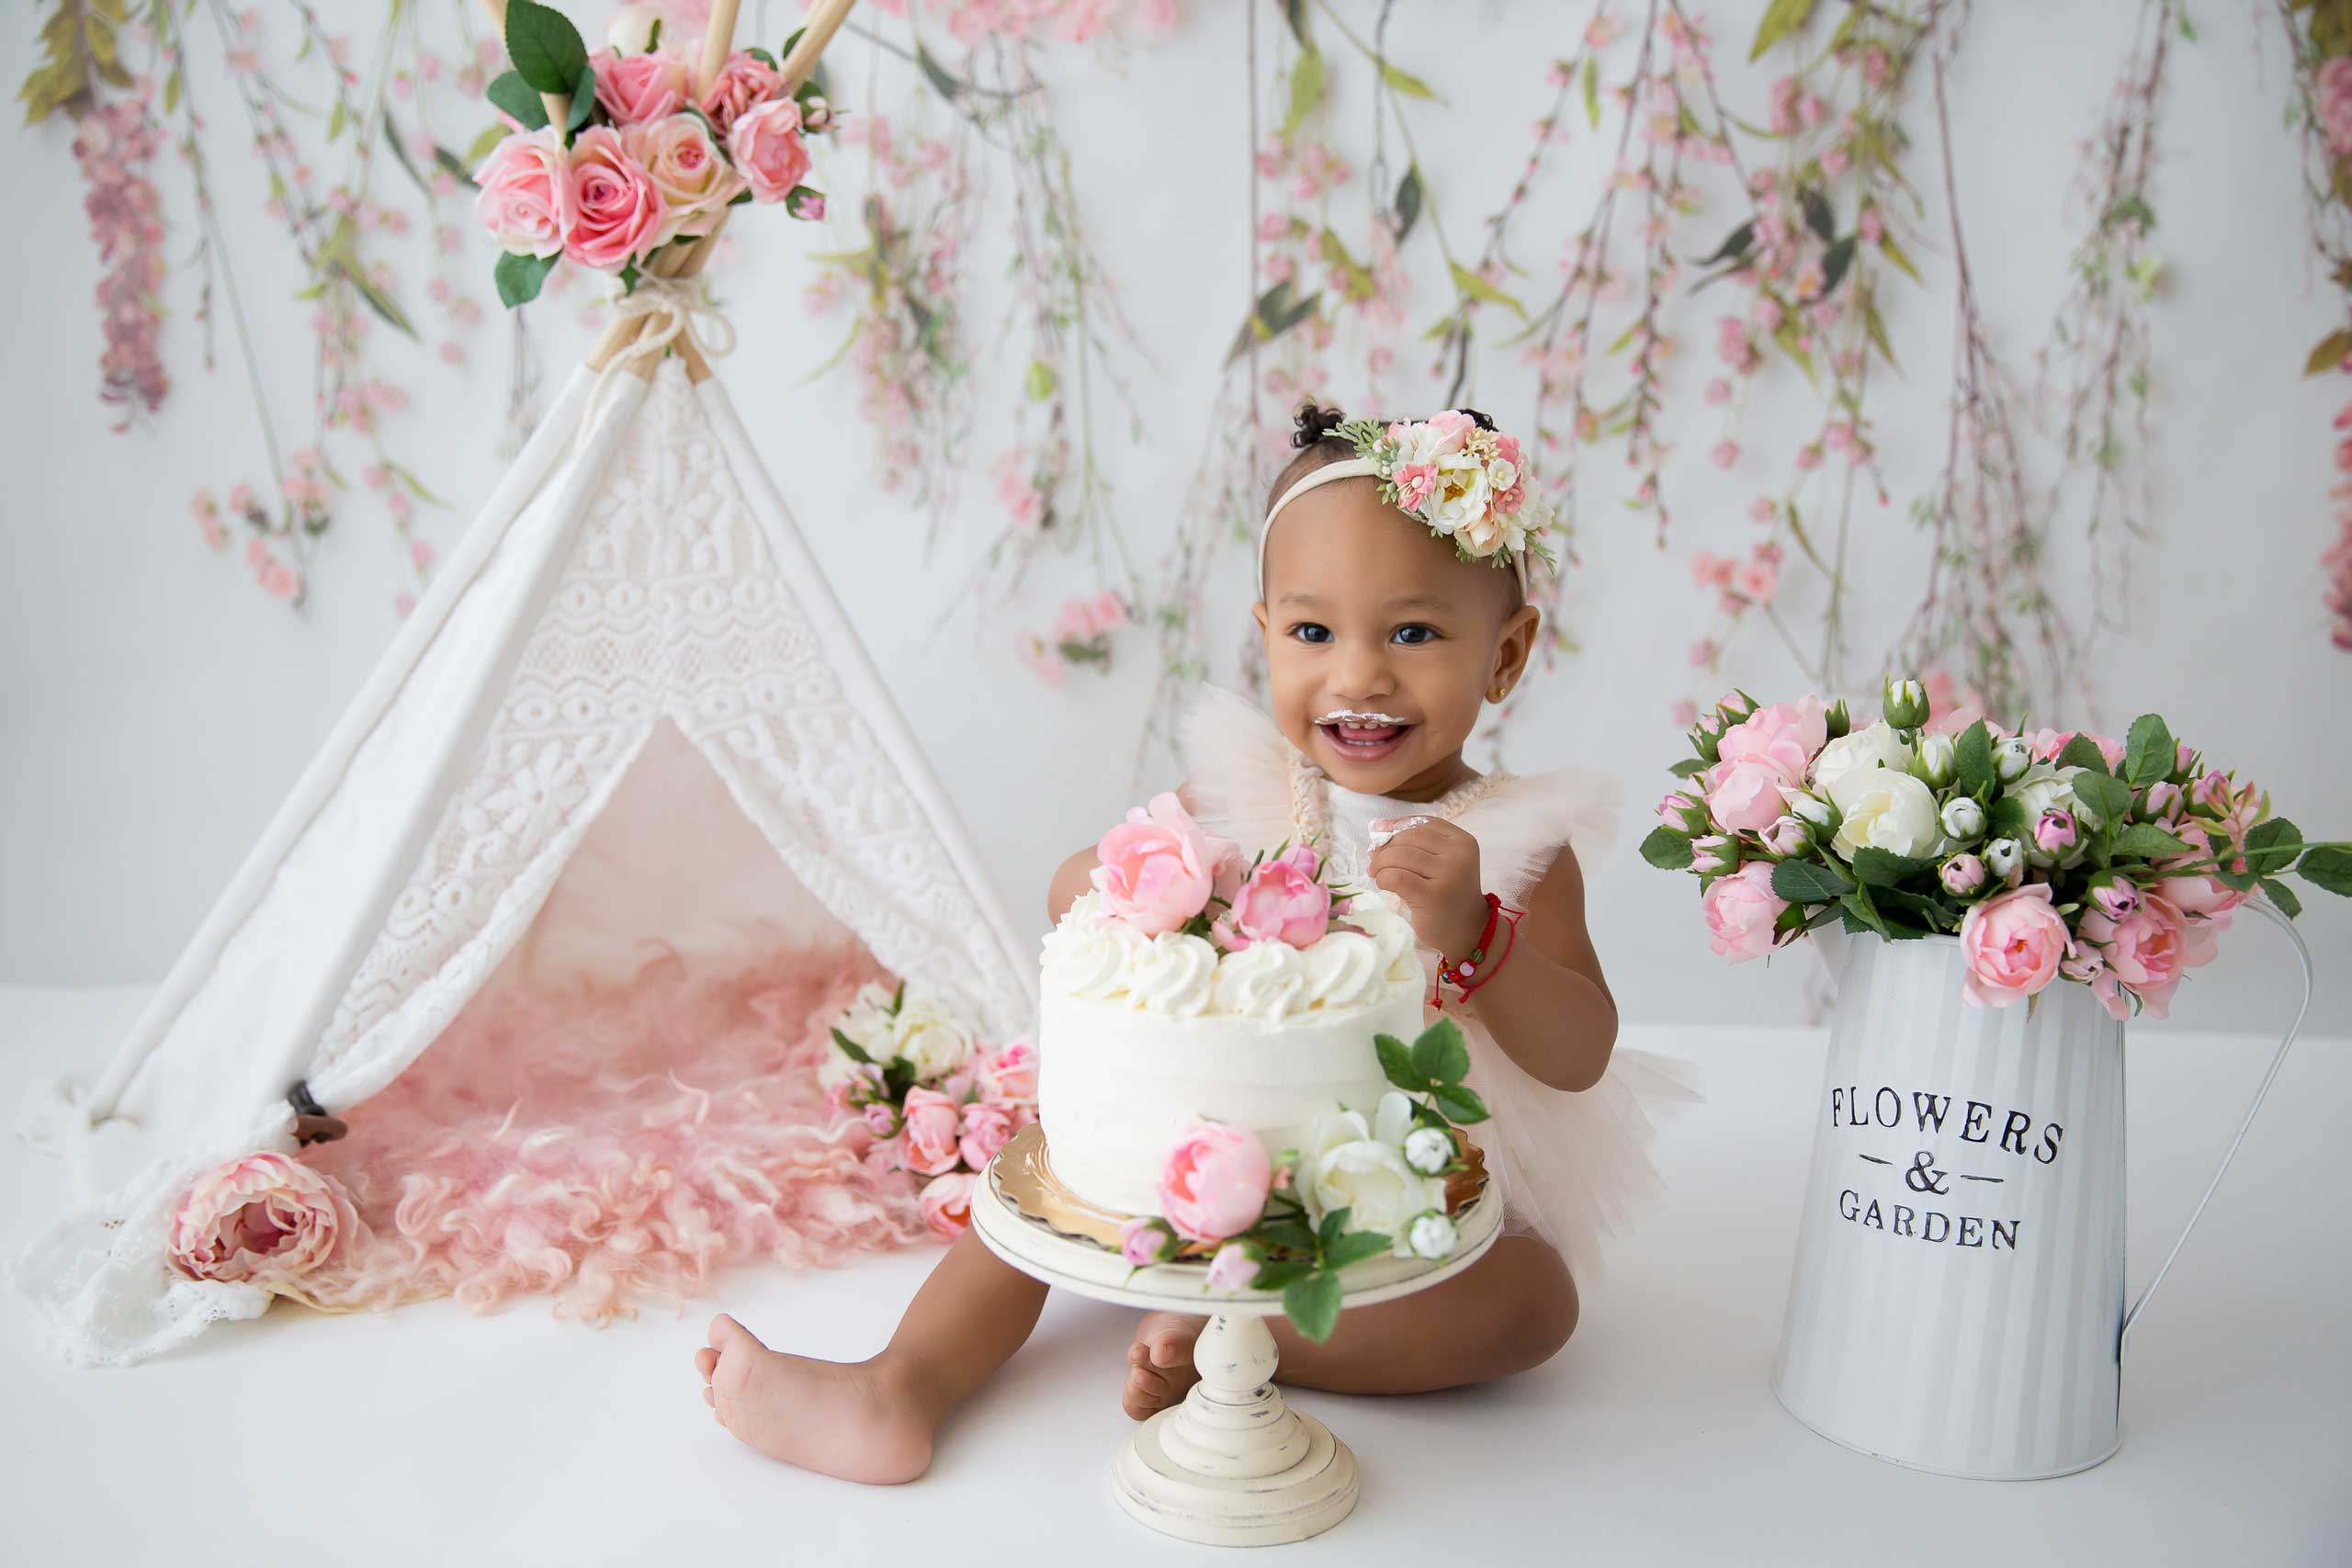 cake smash photo session taken by Ramina Magid Photography in Los Angeles